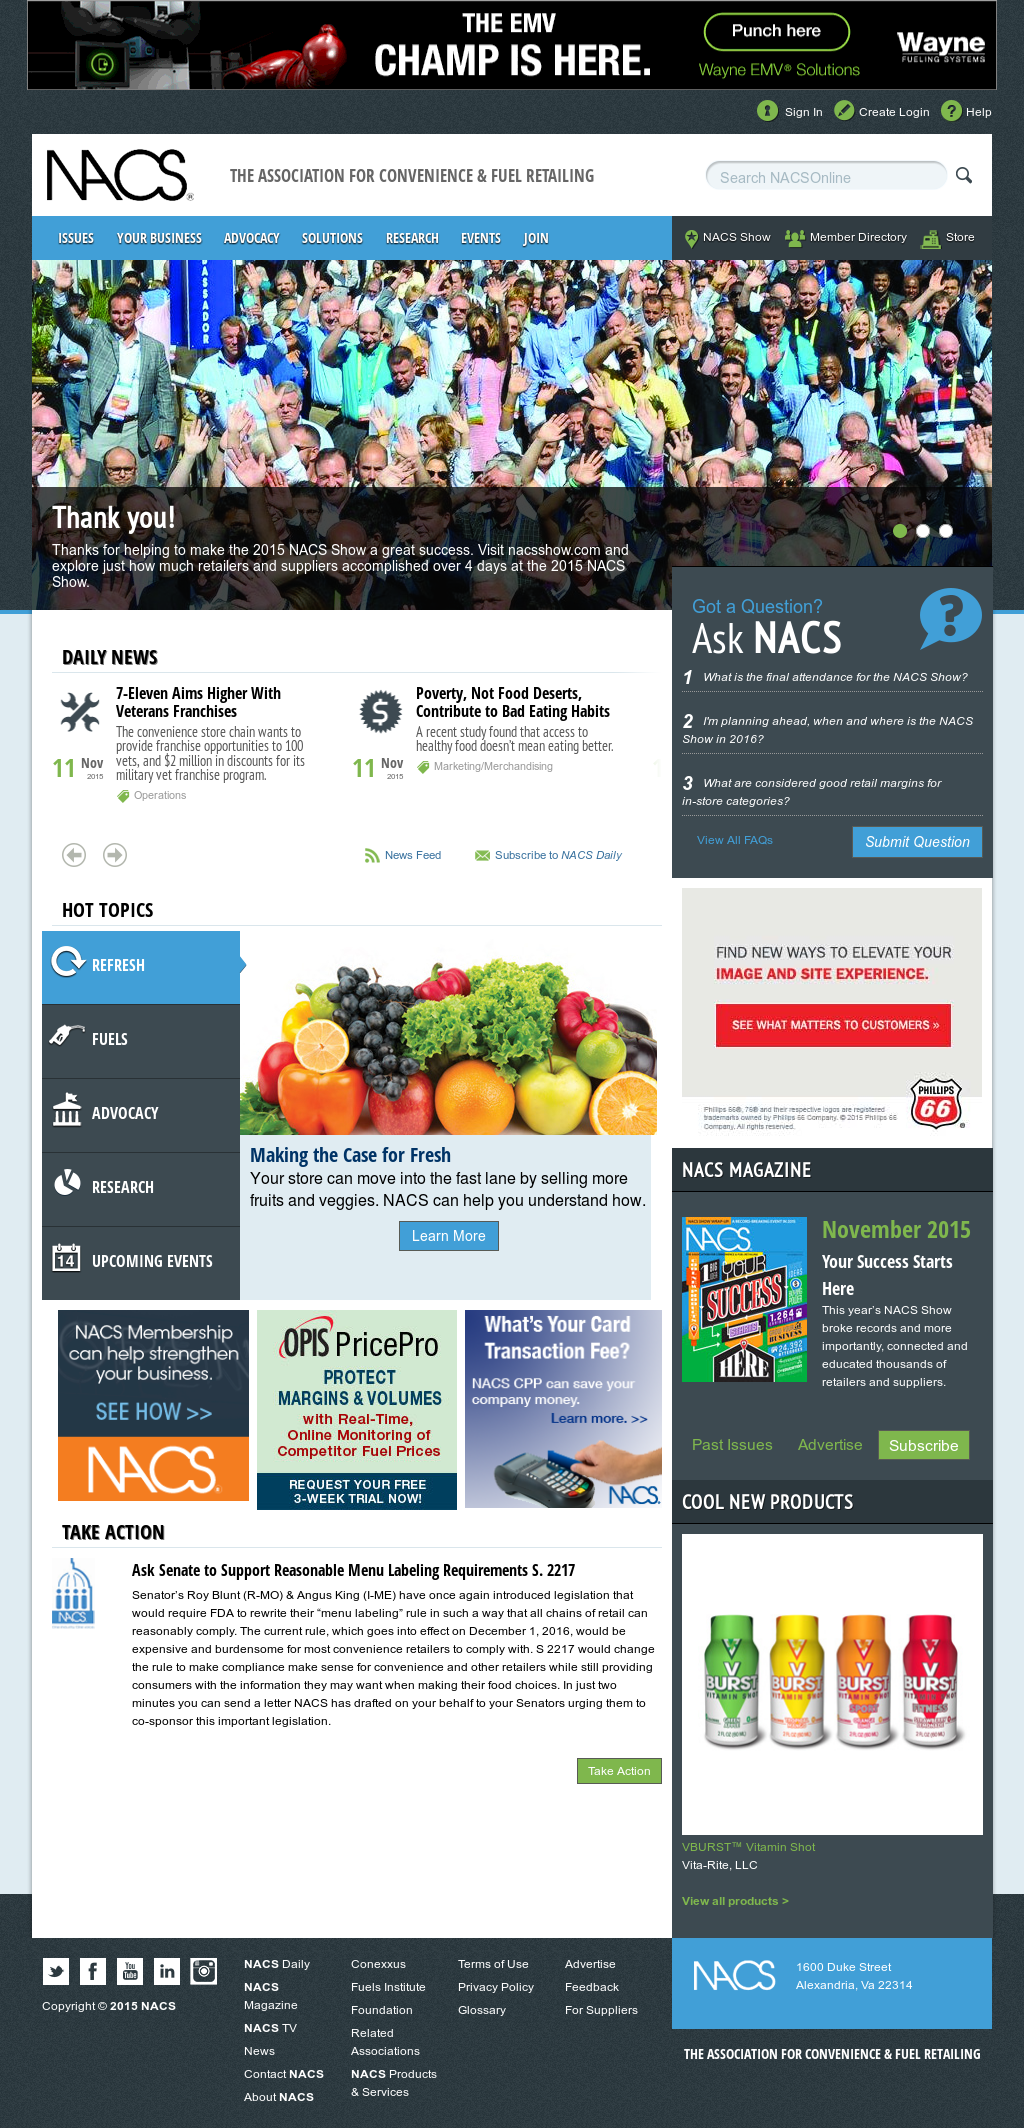 Nacsonline Competitors, Revenue and Employees - Owler